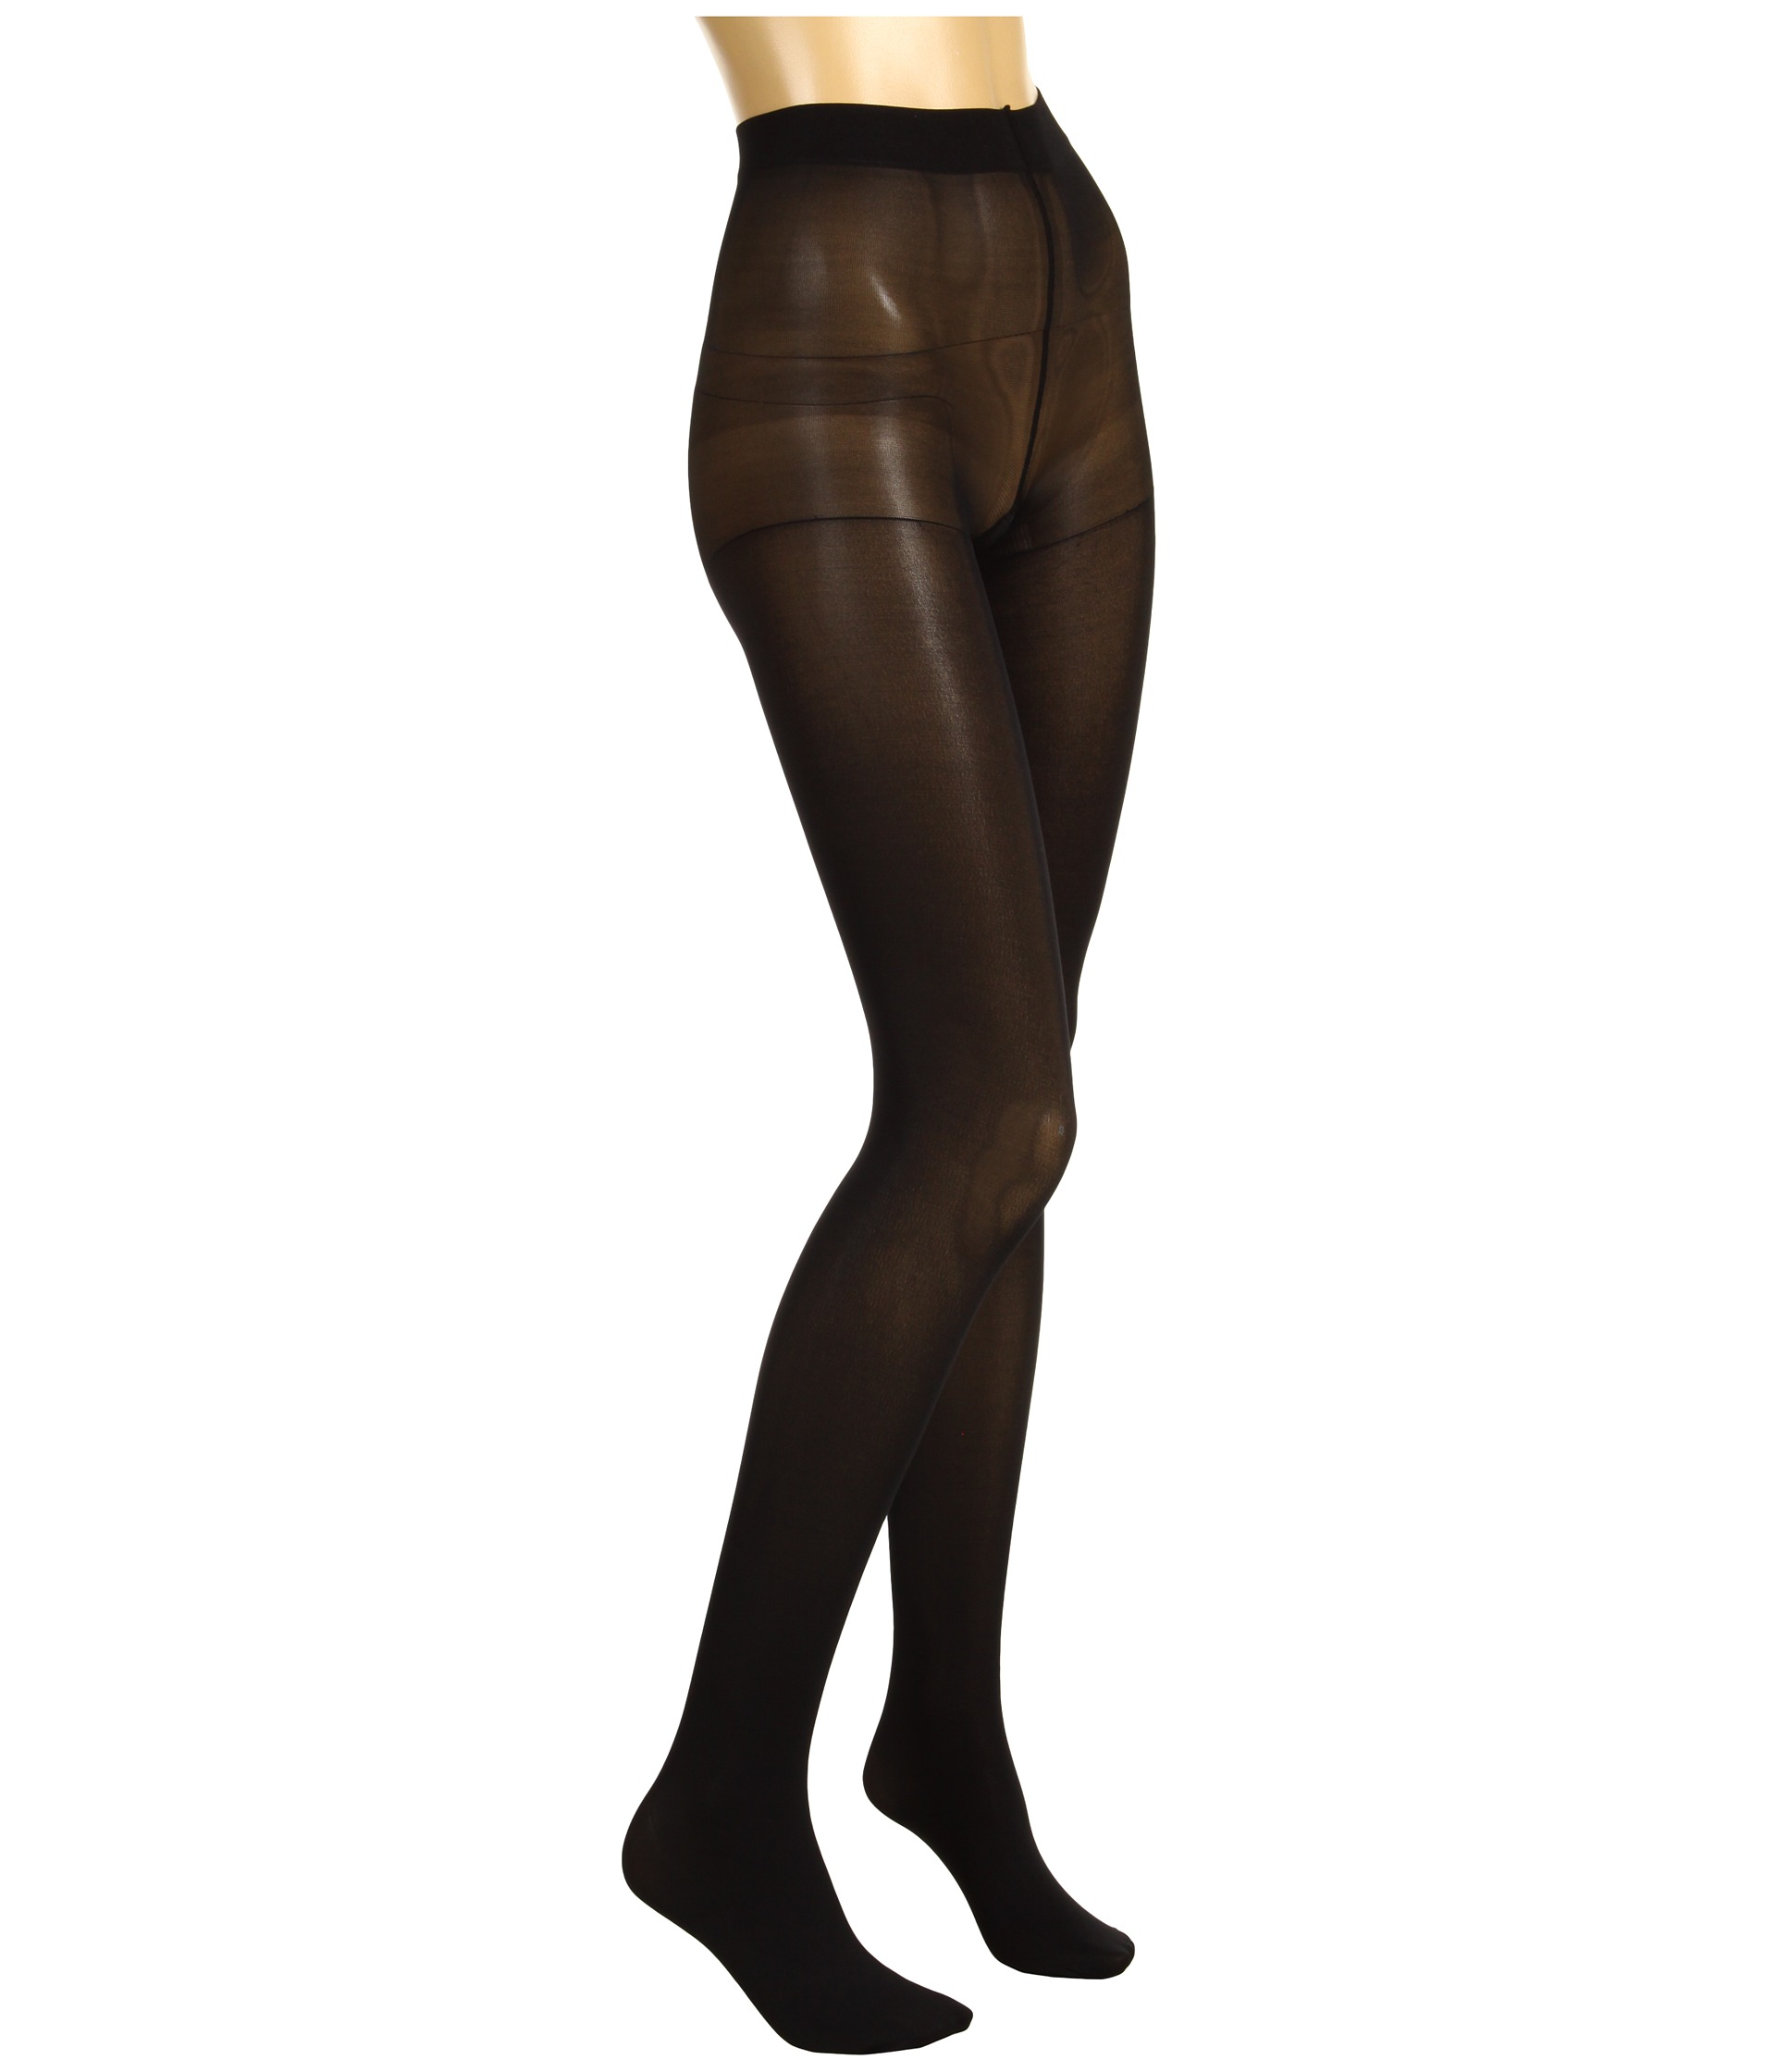 Opaque Tights – 2-Pack: Solid-colored tights in regular fit add a comfortable layer of warmth for cooler weather. Package includes two pairs of one color Nylon/spandex.